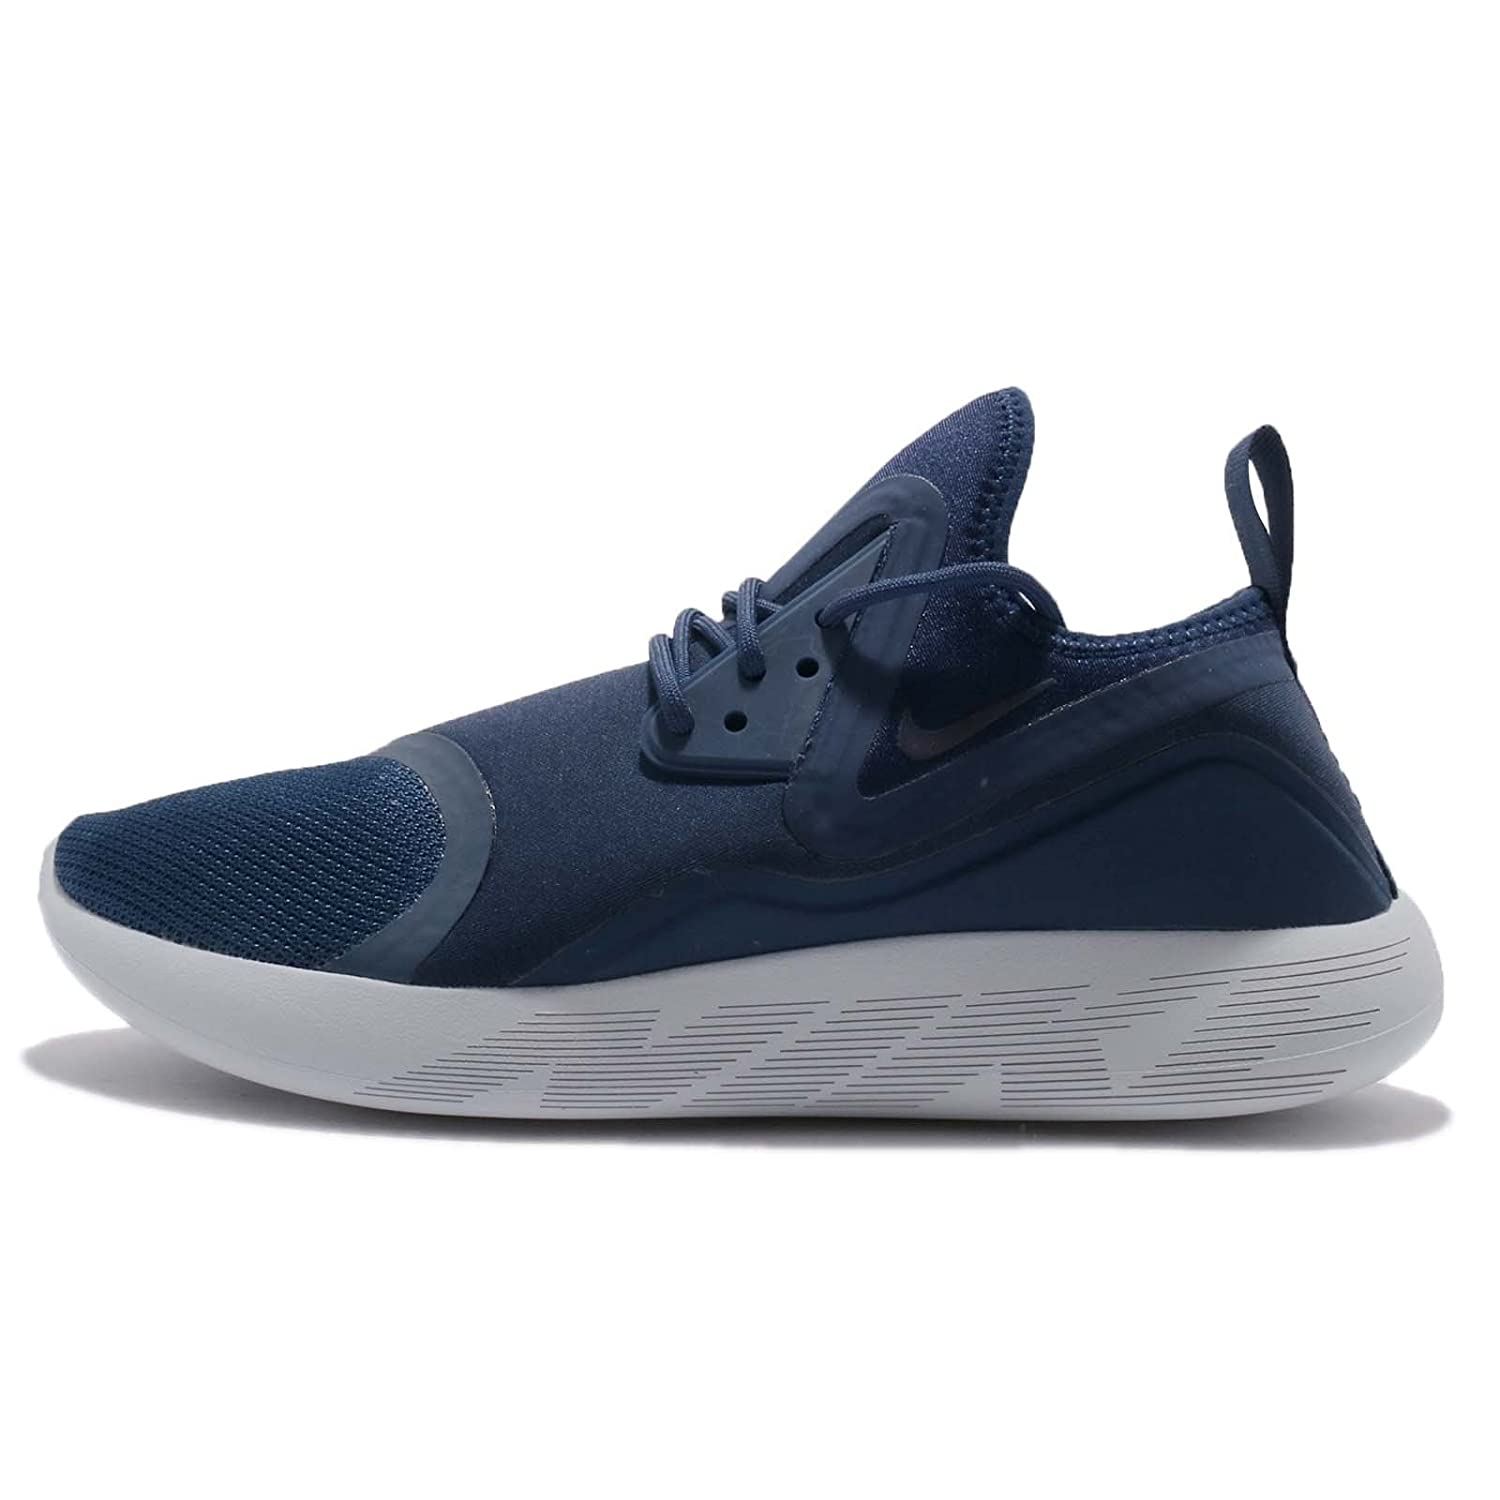 Nike Mens Lunarcharge Essential Ankle-High Fabric Running Shoe  46 EU|Midnight Navy 401